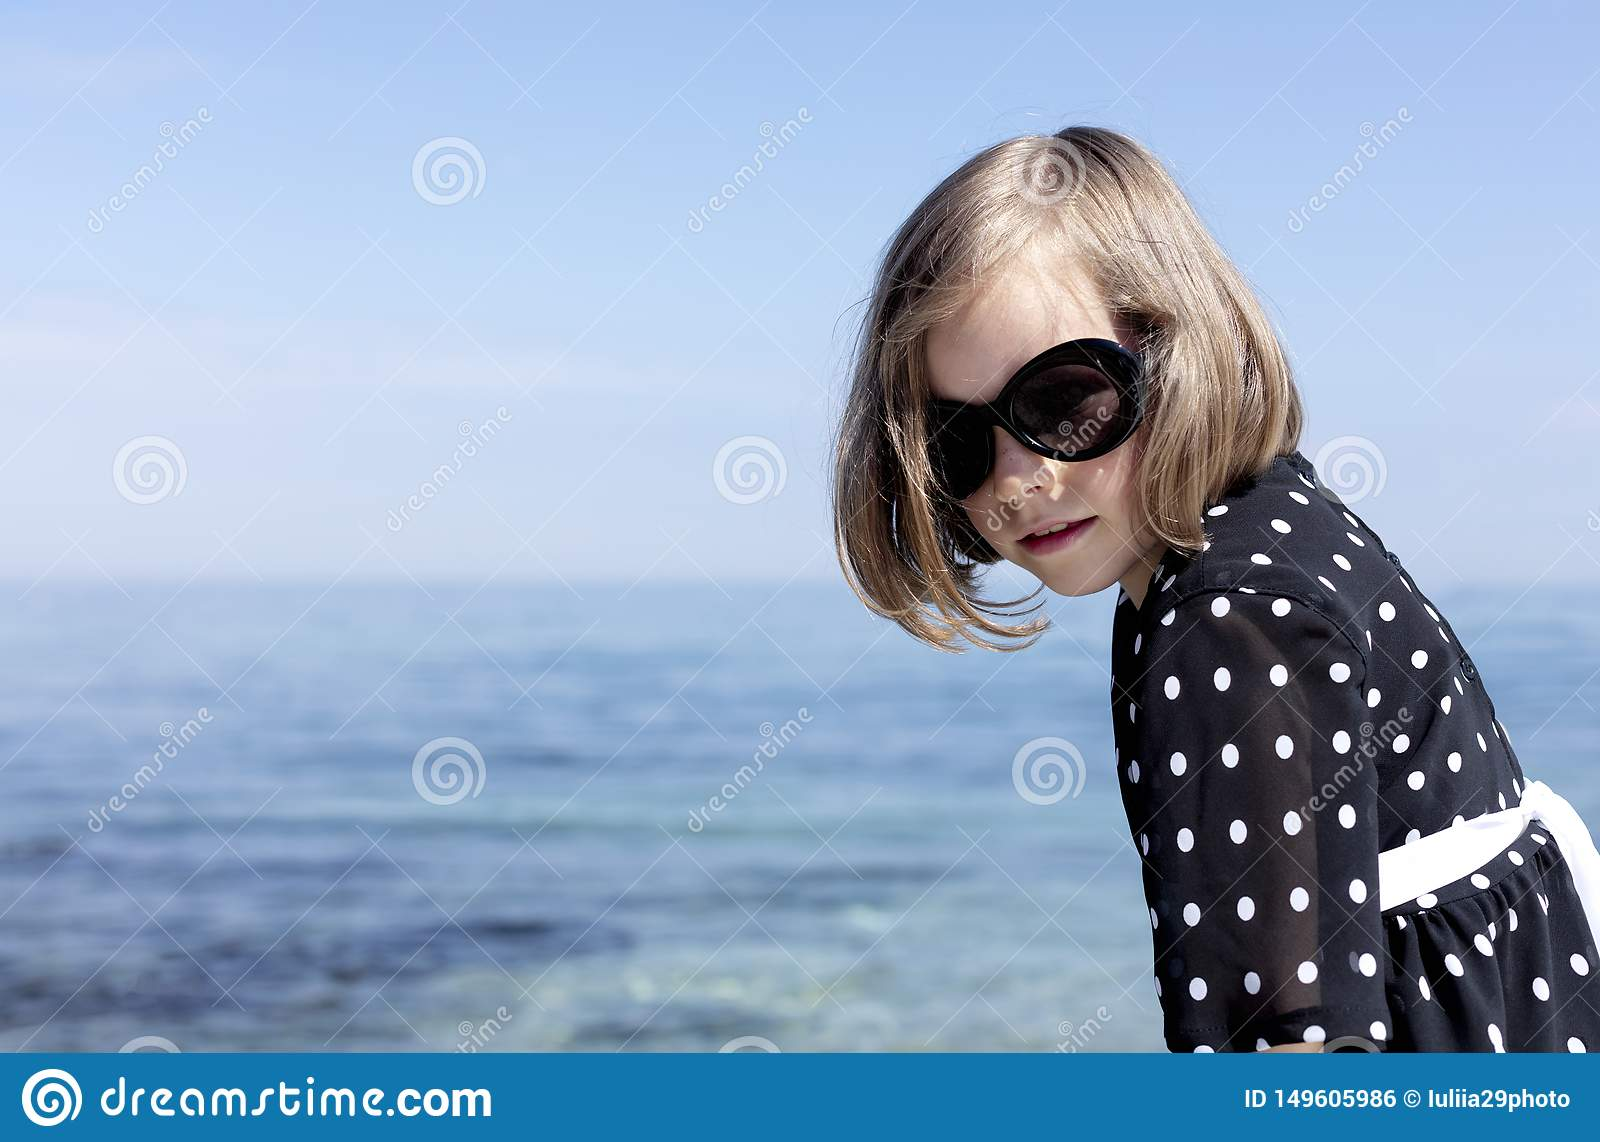 Small 7 years old pretty cheerful girl in a black  dress with white polka dots is standing on a wooden white pier